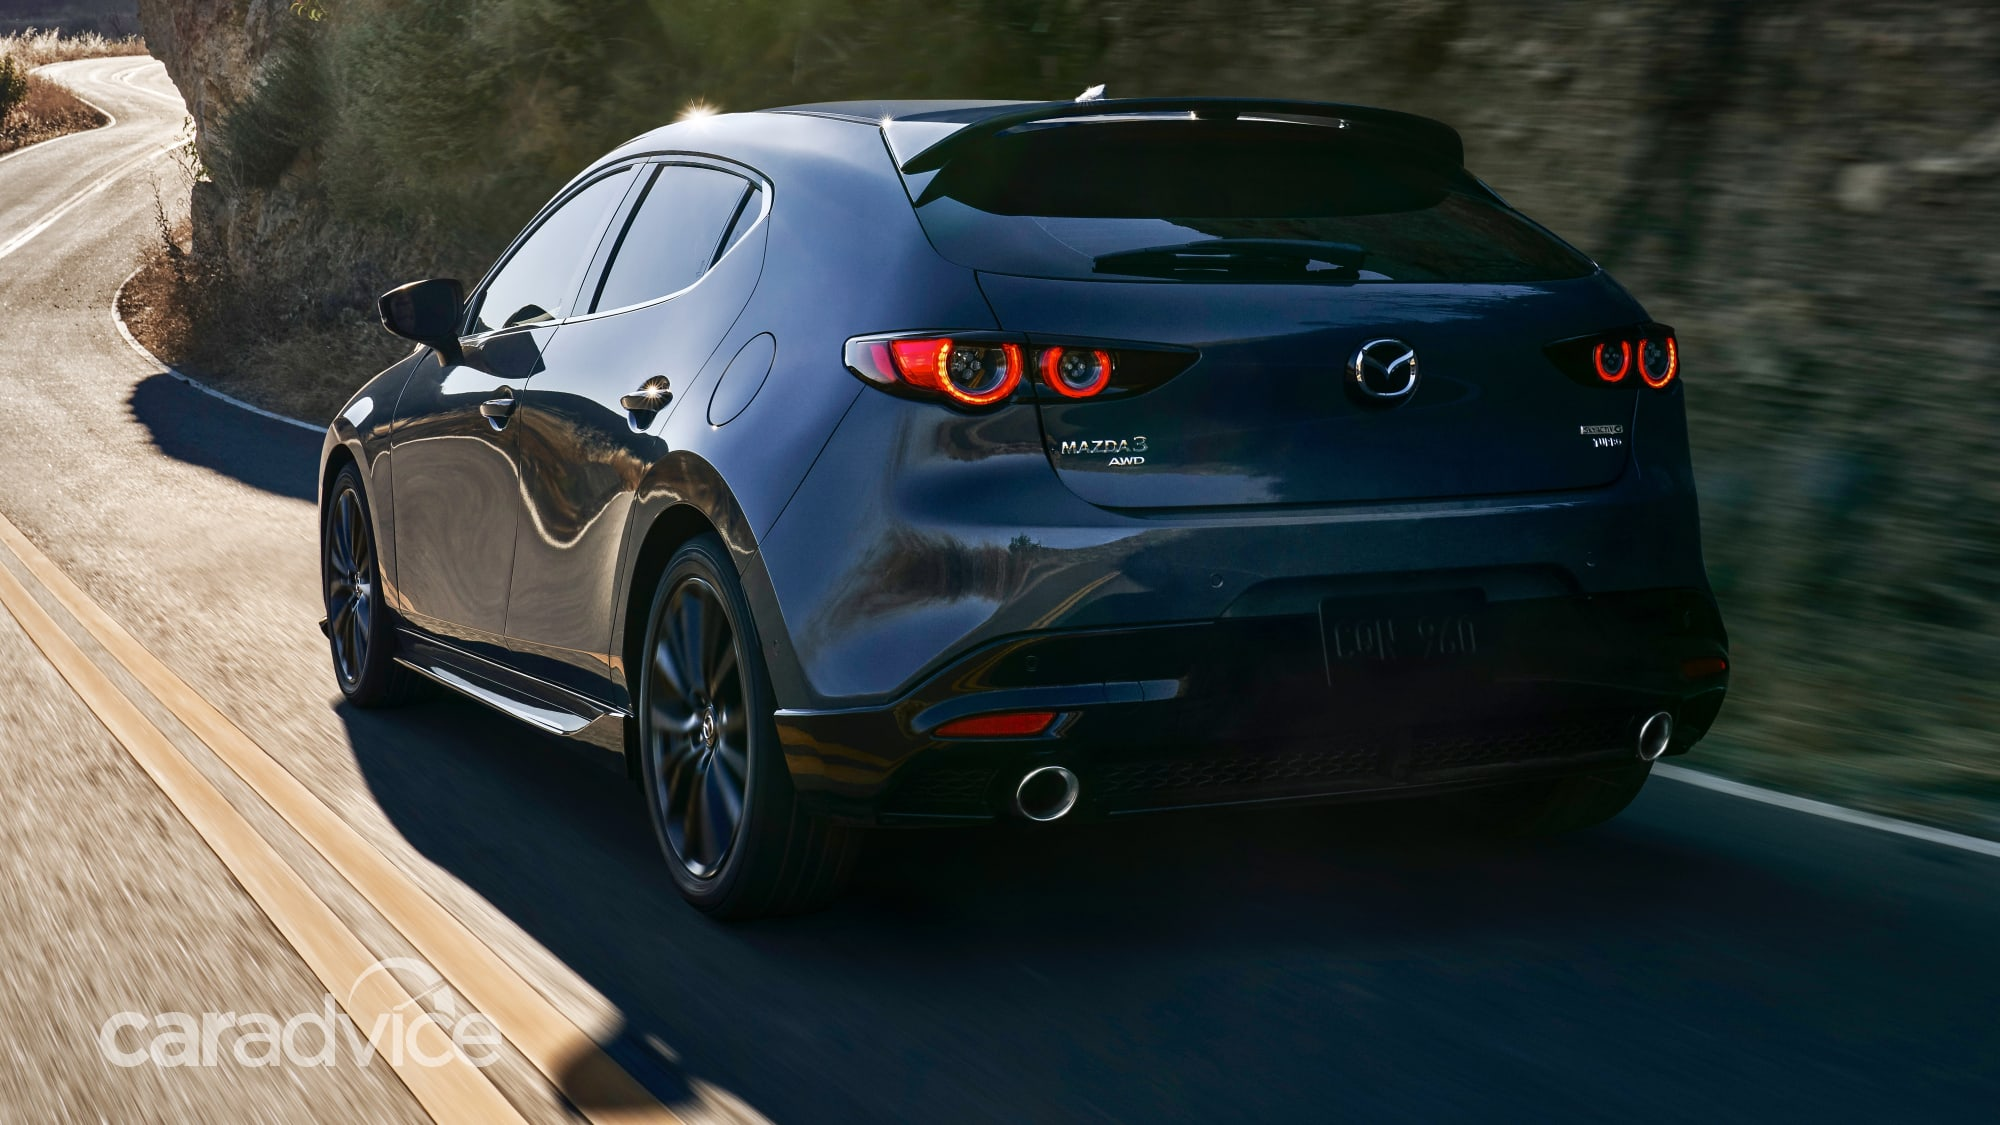 video: 2021 mazda 3 turbo unveiled in all its glory. now